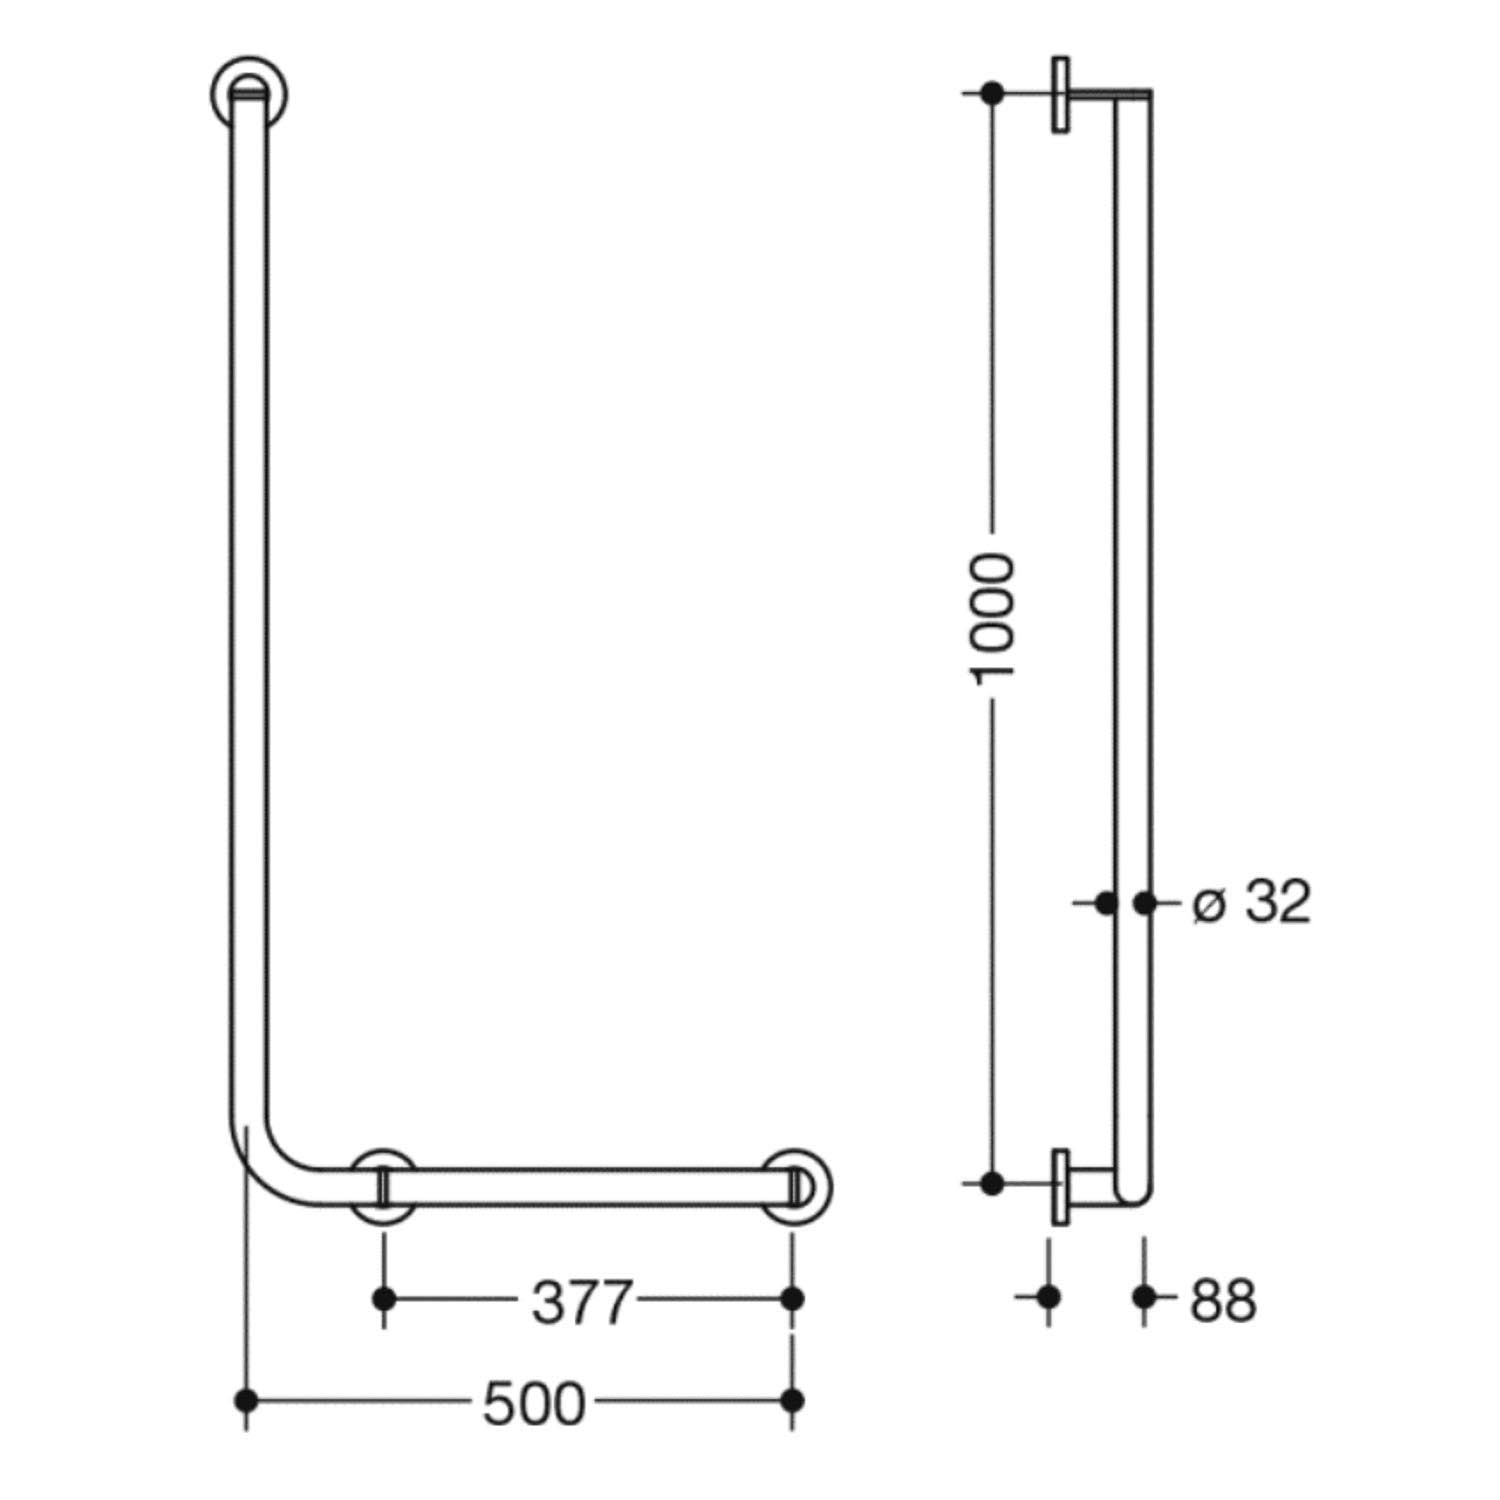 1000x500mm Right Handed Freestyle L Shaped Grab Rail with a satin steel finish dimensional drawing